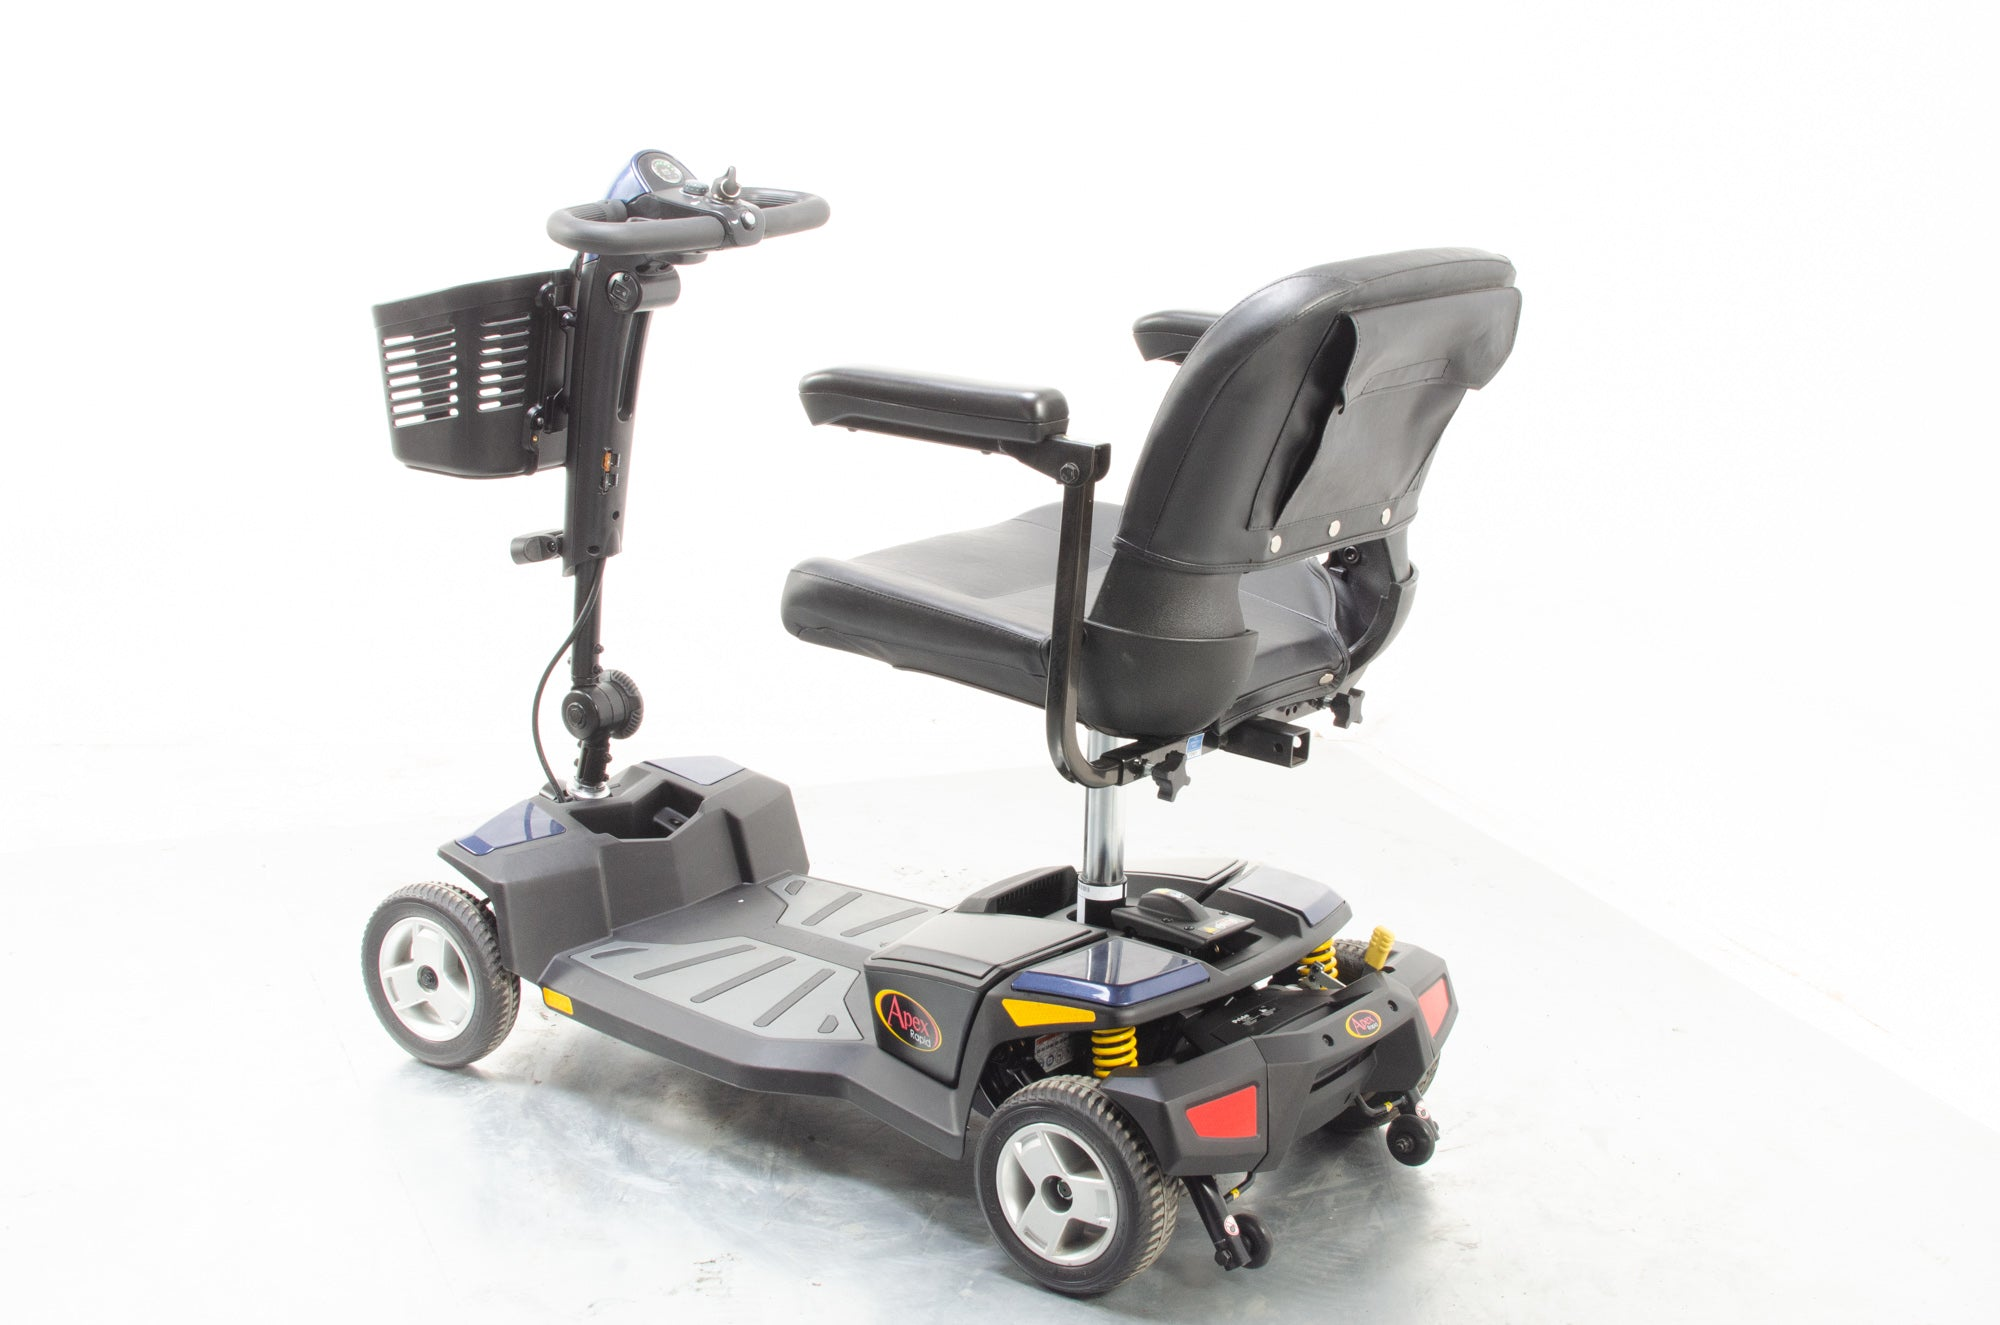 Pride Apex Rapid Used Electric Mobility Scooter Small Transportable Suspension Boot Portable